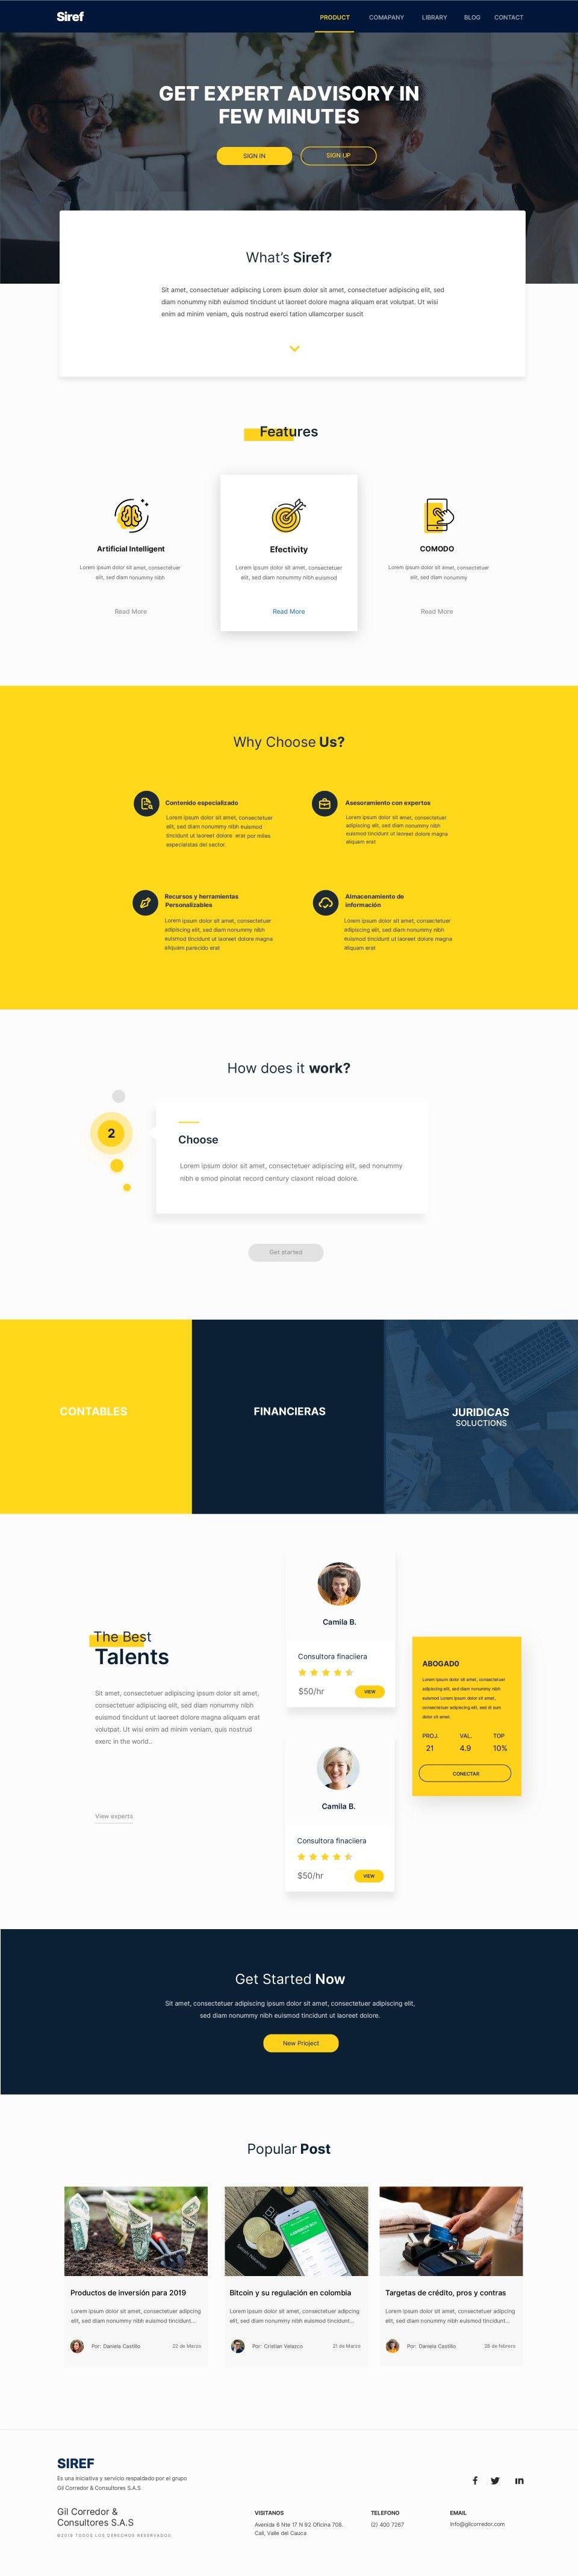 Web Design Project For The Startup Siref A Web Platform To Find Mainly Specialized Information And Profe Web Design Projects Web Design Web Design Inspiration